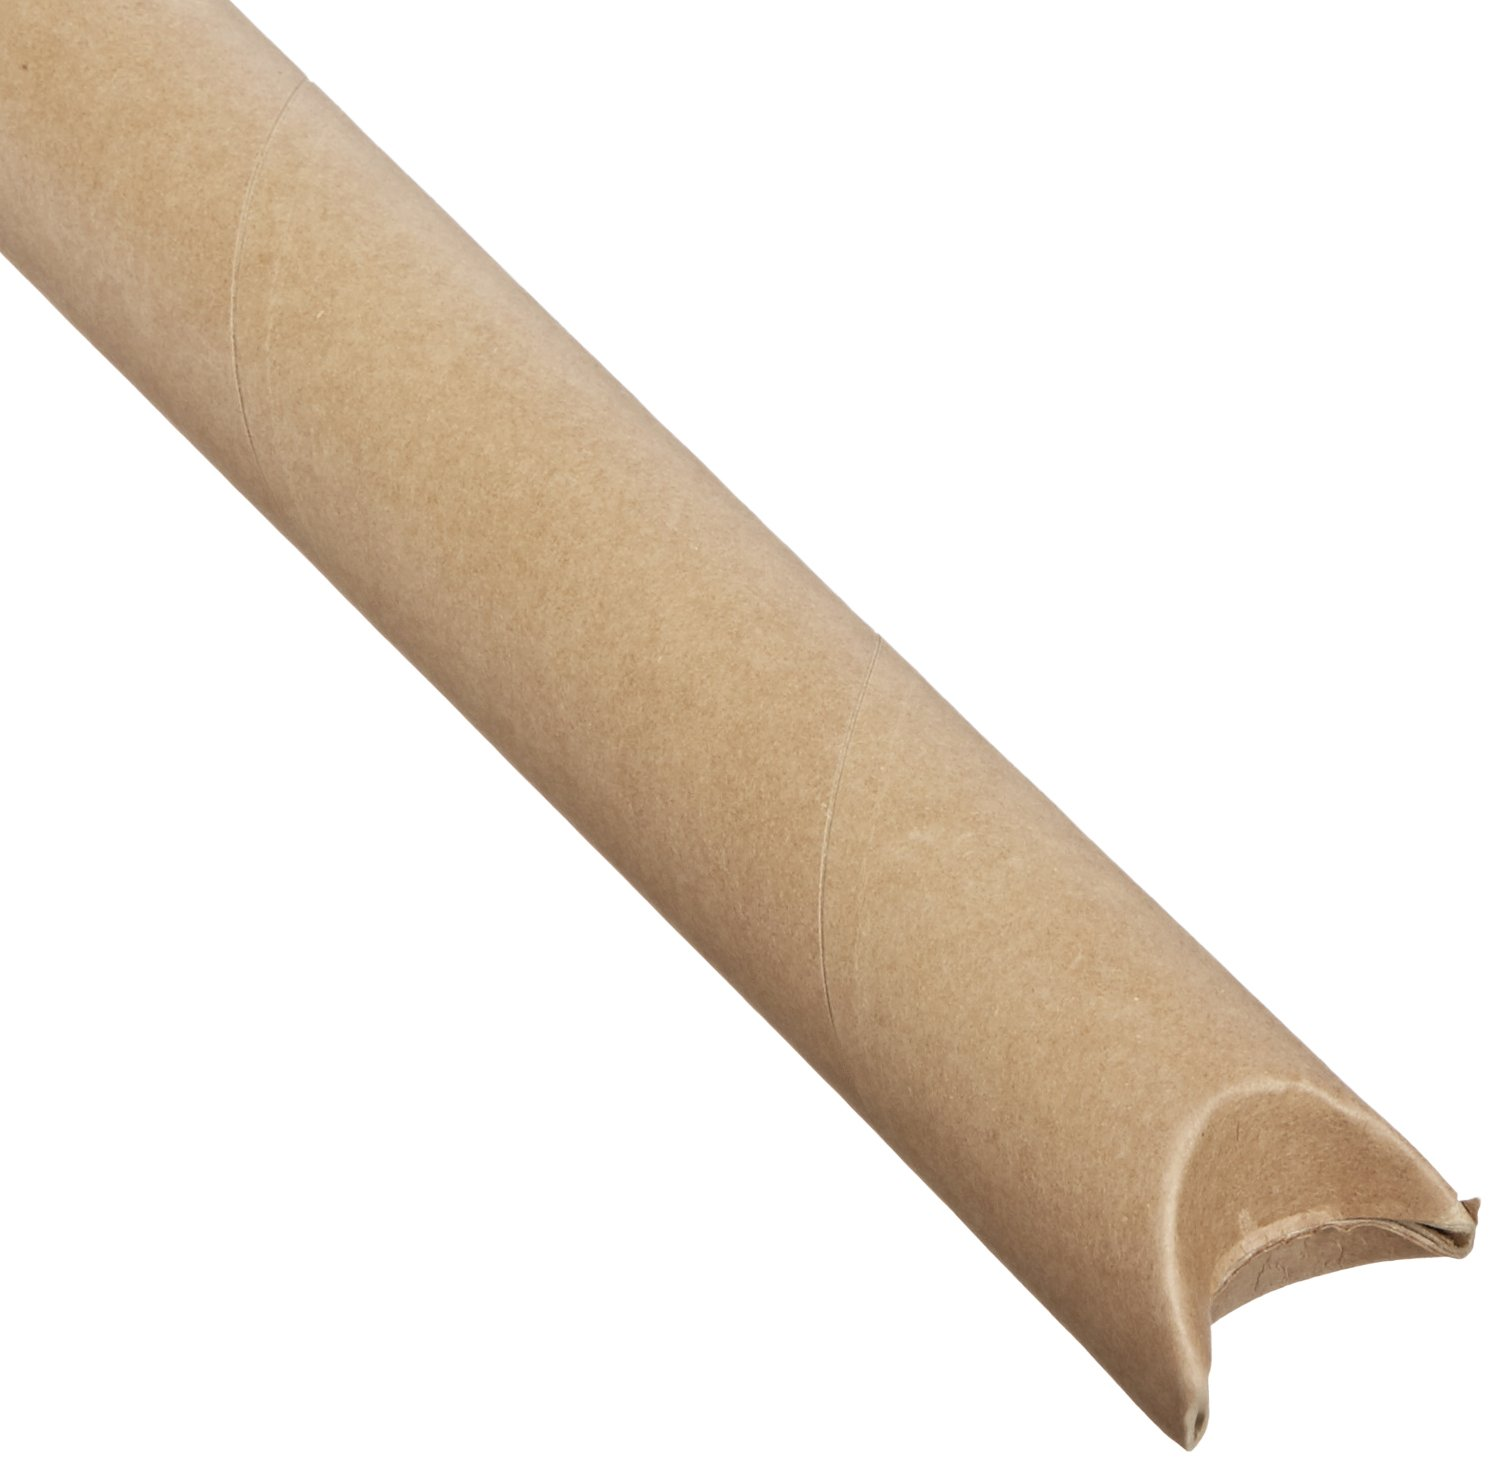 Aviditi S2012K Spiral Wound Fibreboard Crimped End Mailing Tube, 12-Inch Length X 2-Inch Width, 0.06-Inch Thick, Kraft (Case of 50)